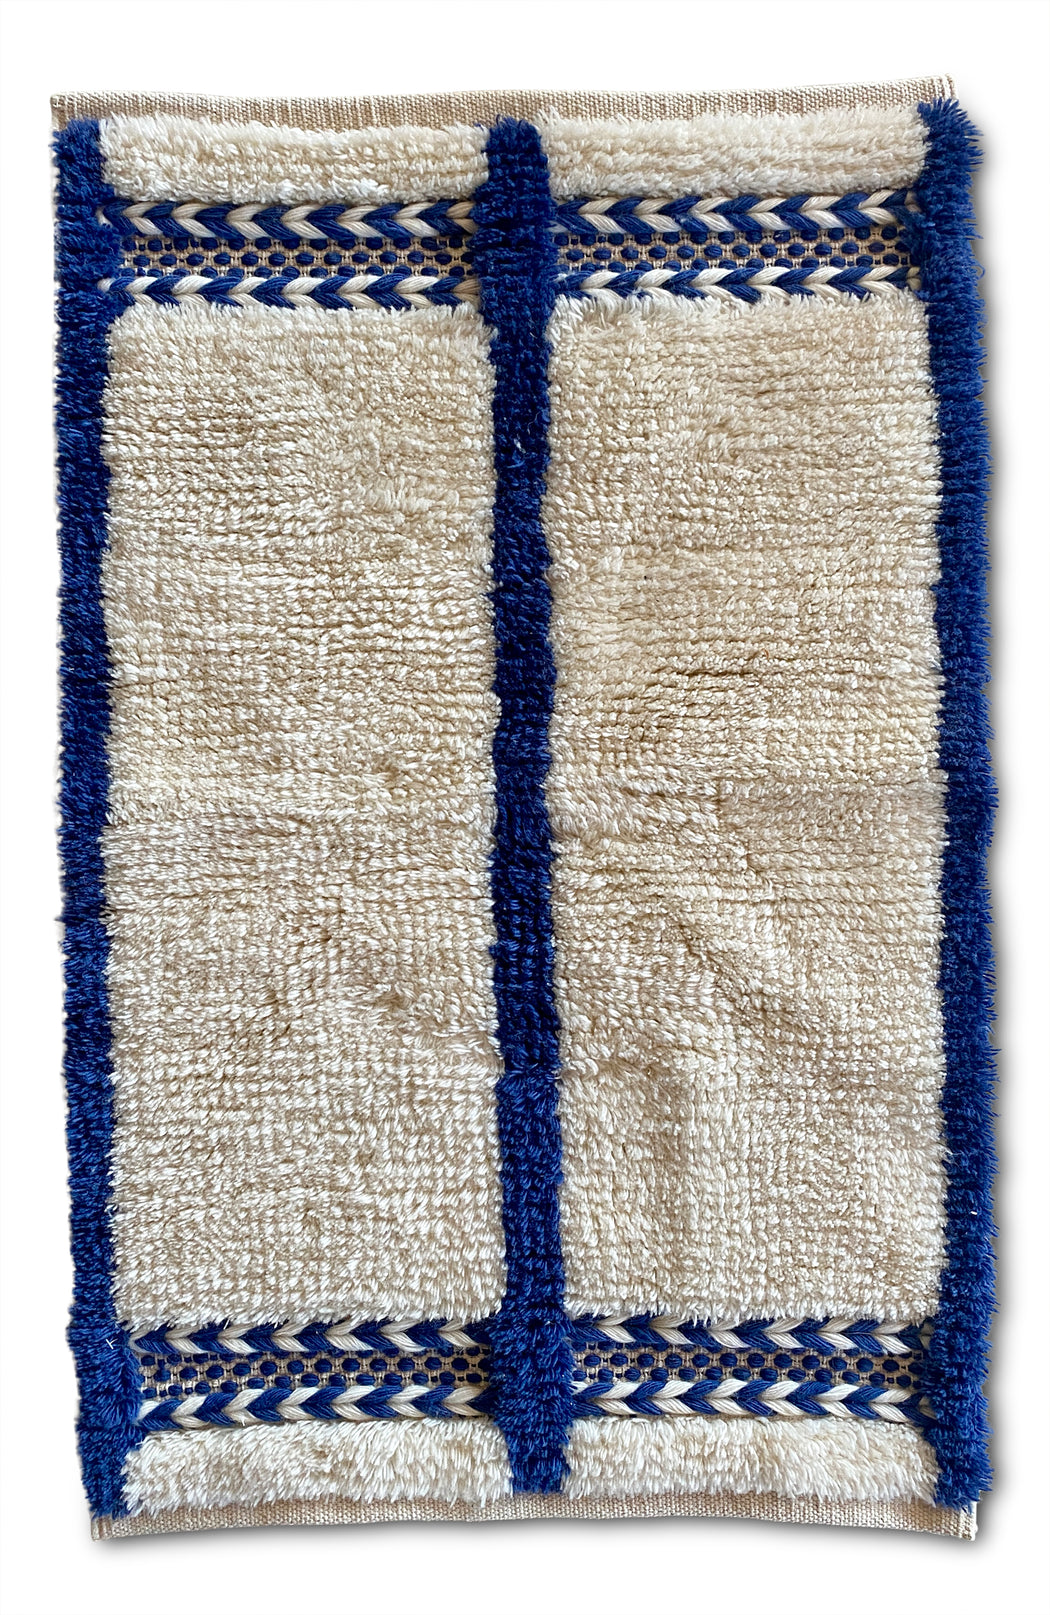 Morrow Soft Goods Blue + White Bath Mat